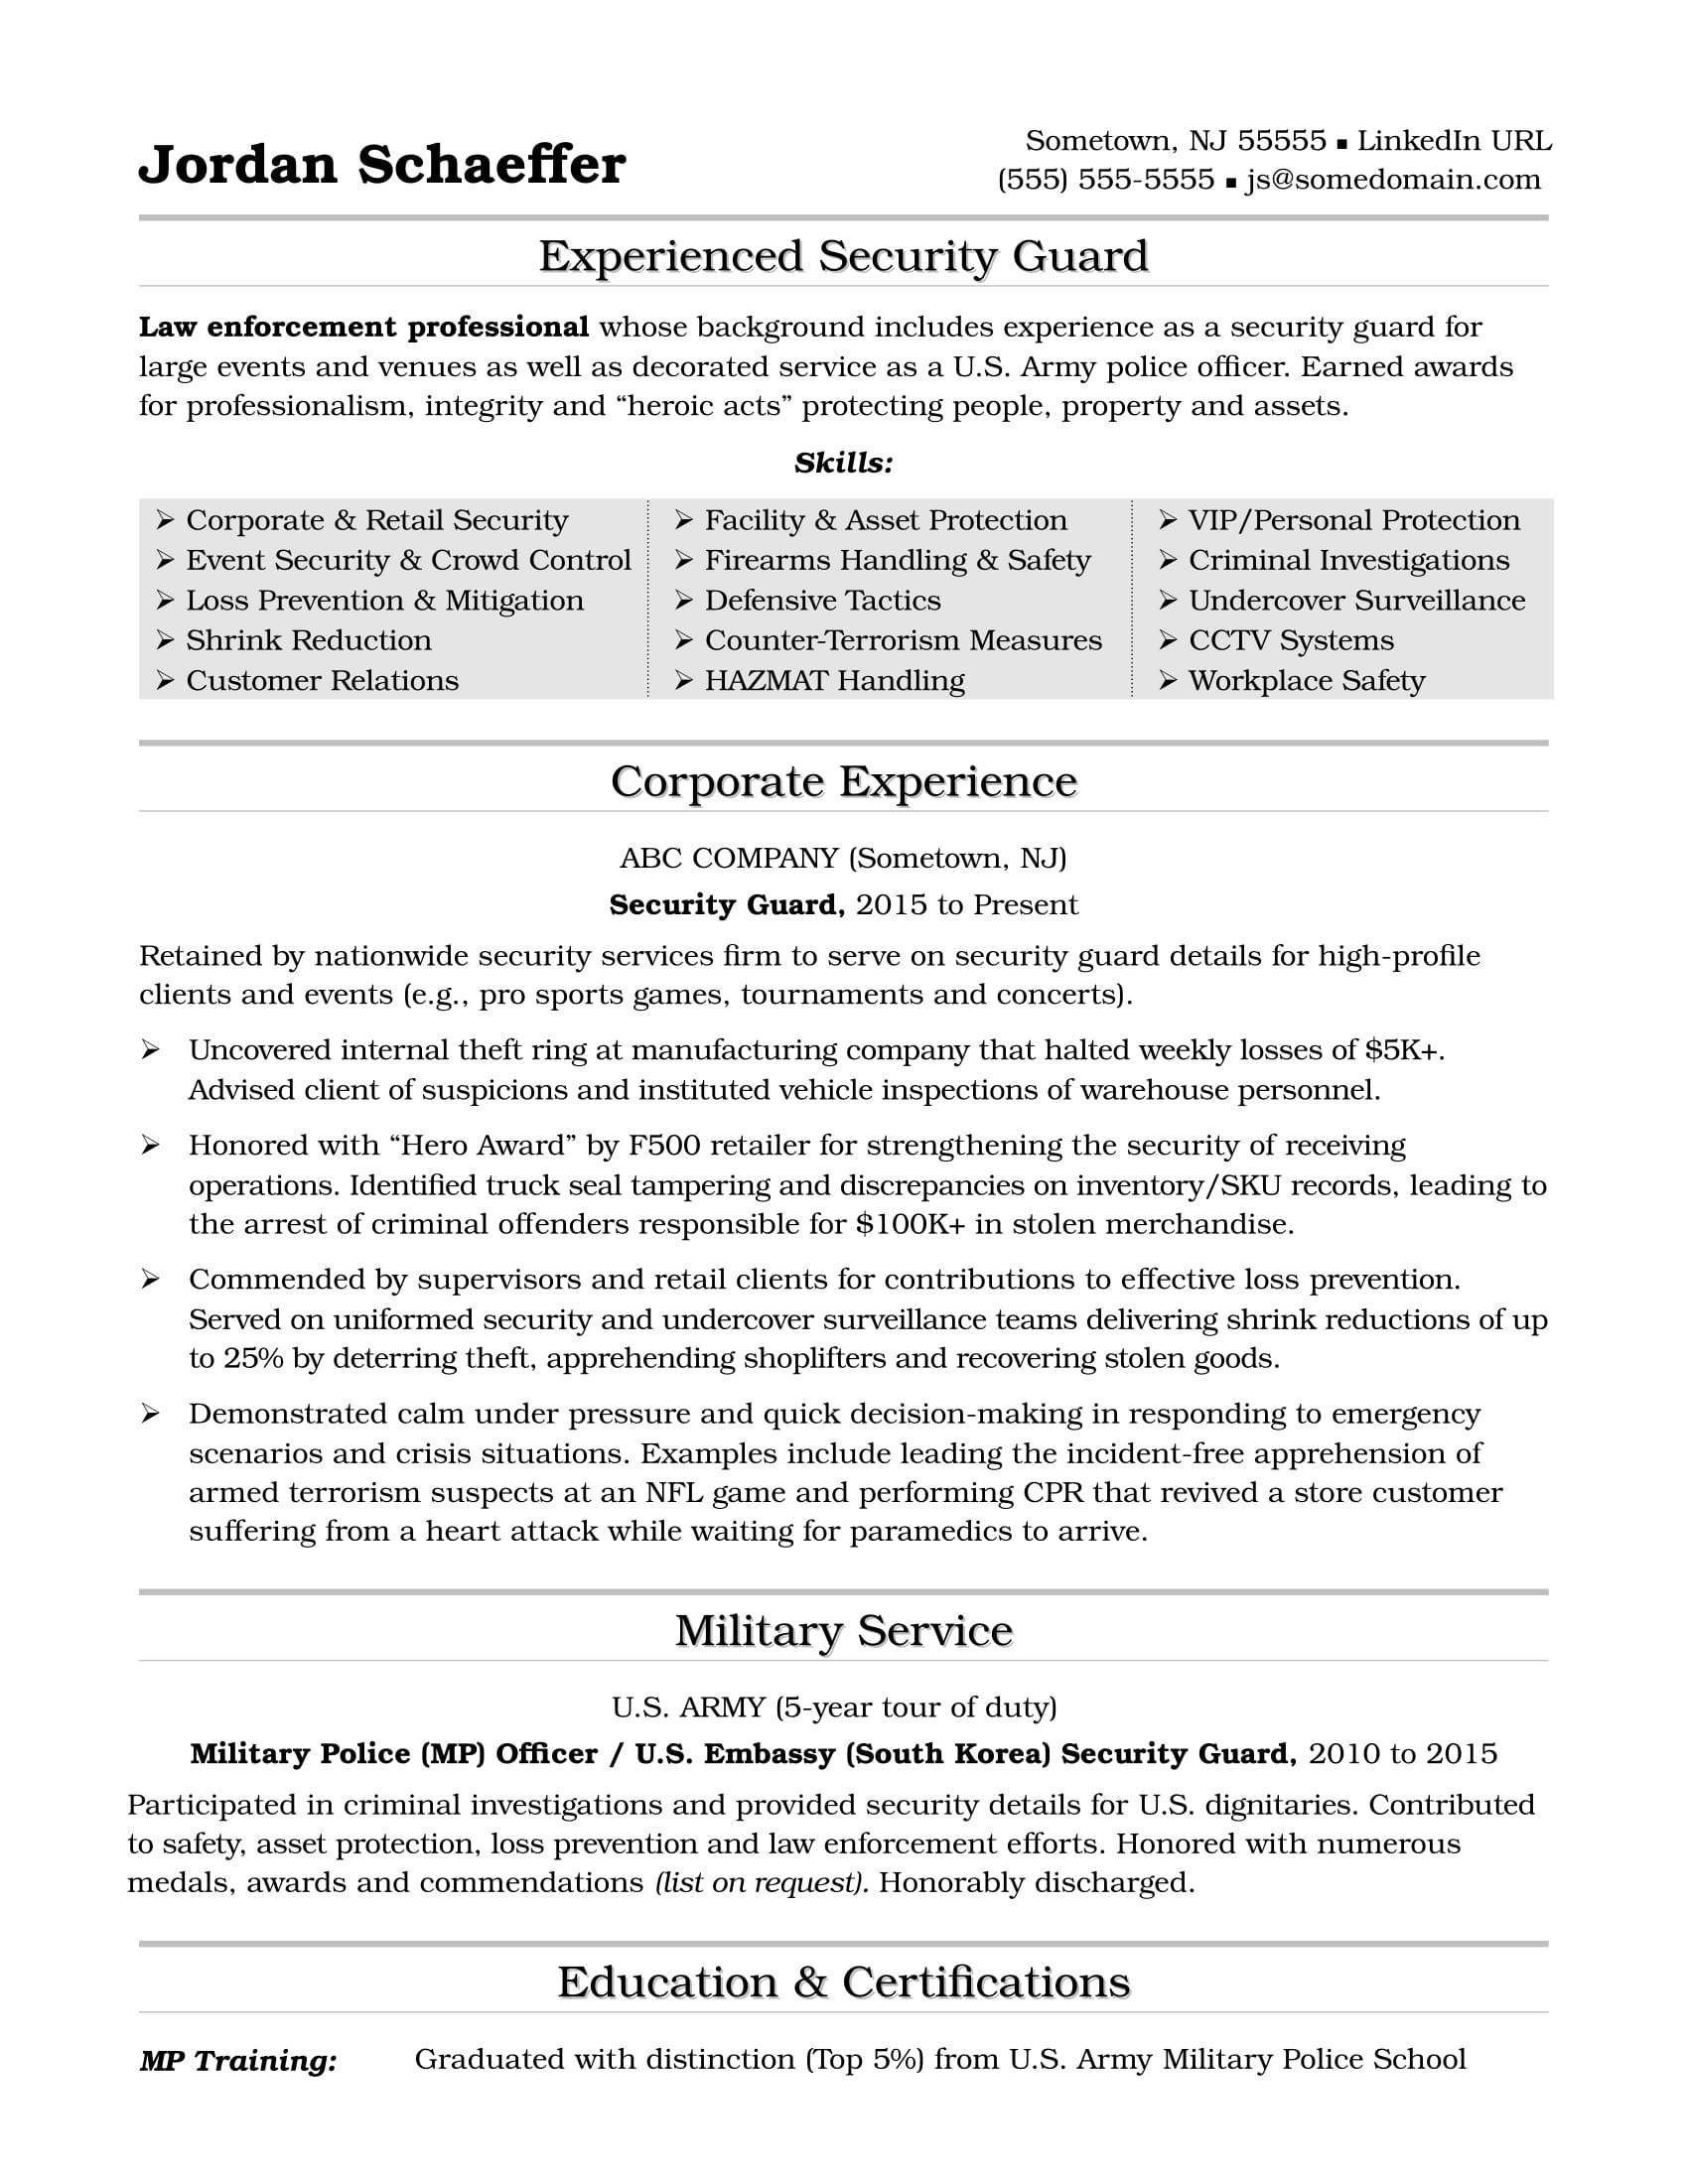 Resume Sample For Experienced Prepossessing Security Guard Resume Sample  Sample Resume And Career Advice